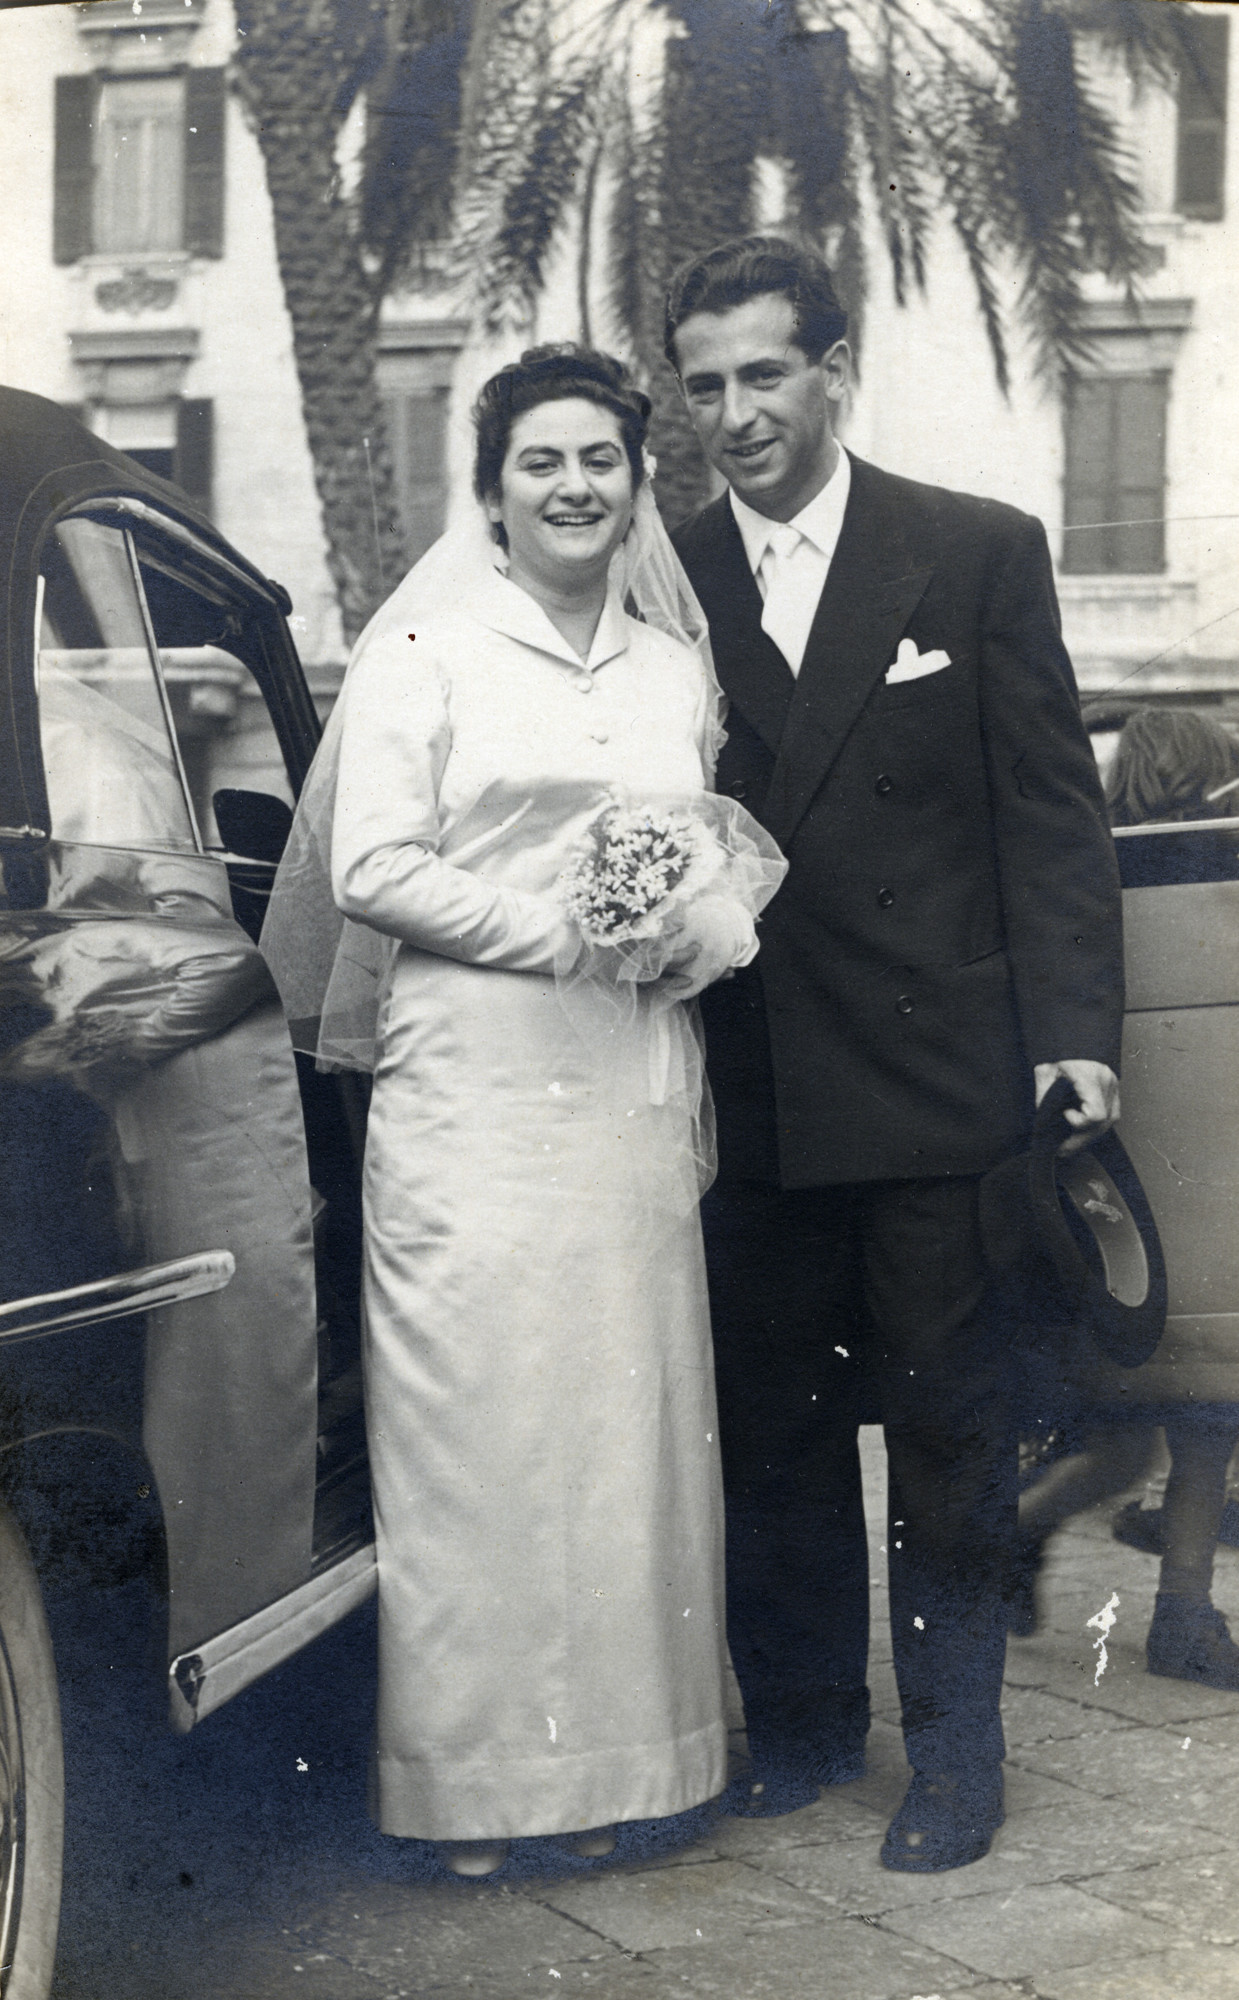 Emma Di Capua and Stefan Honig pose next to an automobile on their wedding day.